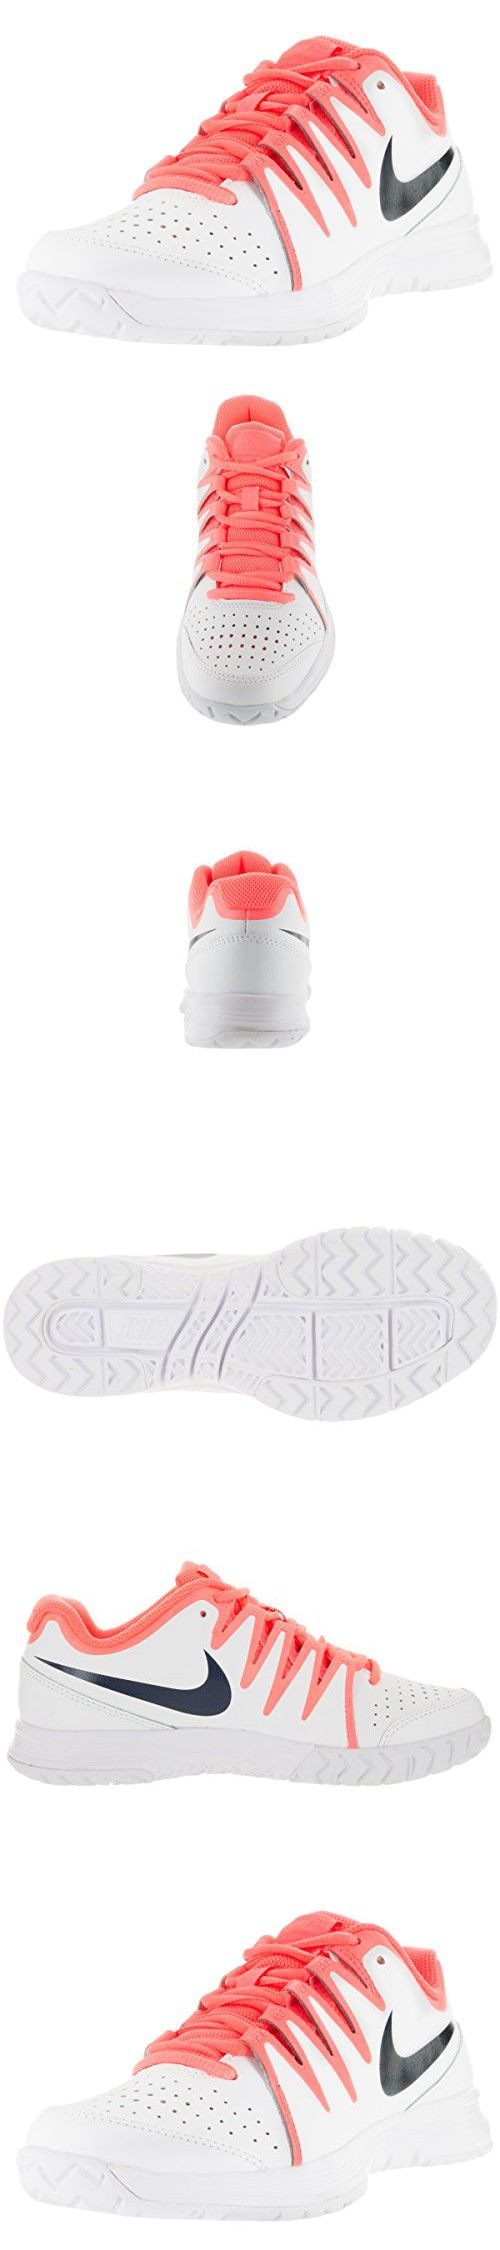 Nike Women's Vapor Court White/Obsdn/Brght Mng/Atmc Pnk Tennis Shoes (7)